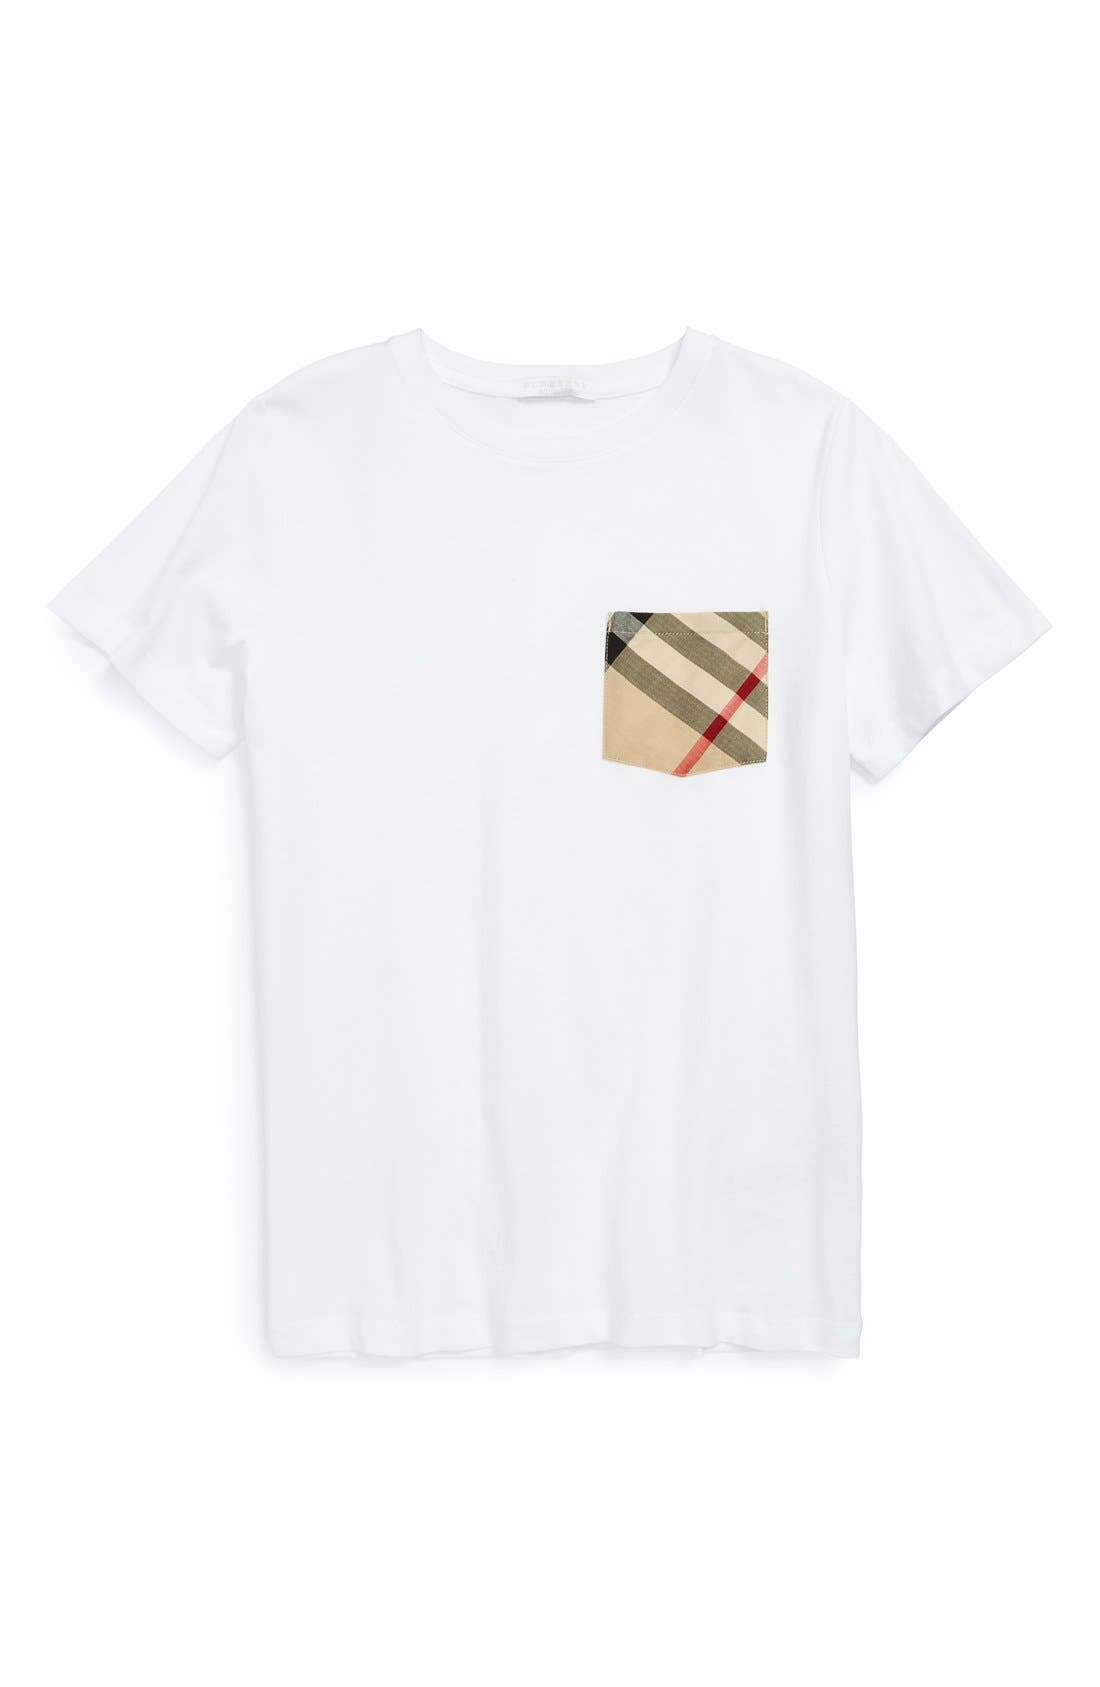 Alternate Image 1 Selected - Burberry Check Print Chest Pocket T-Shirt (Little Boys & Big Boys)